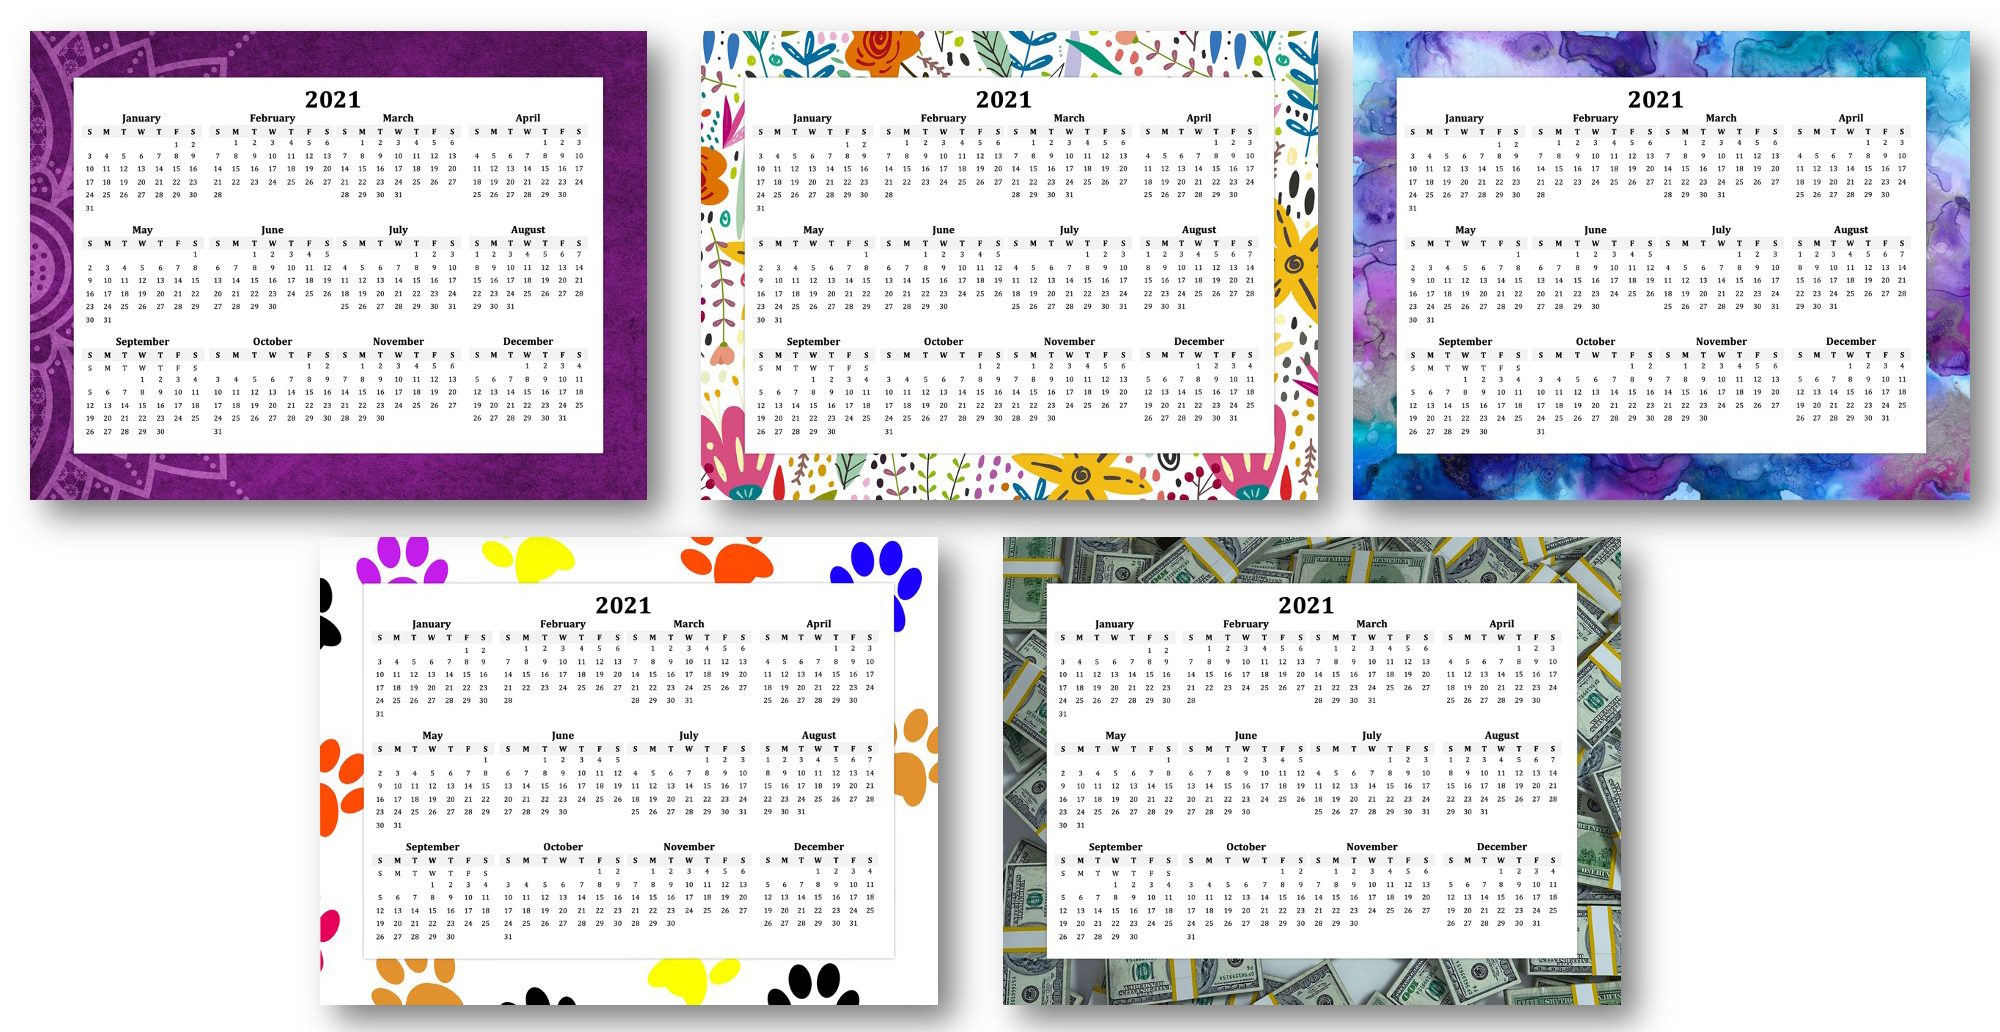 2021 At a Glance Calendars with PLR Rights